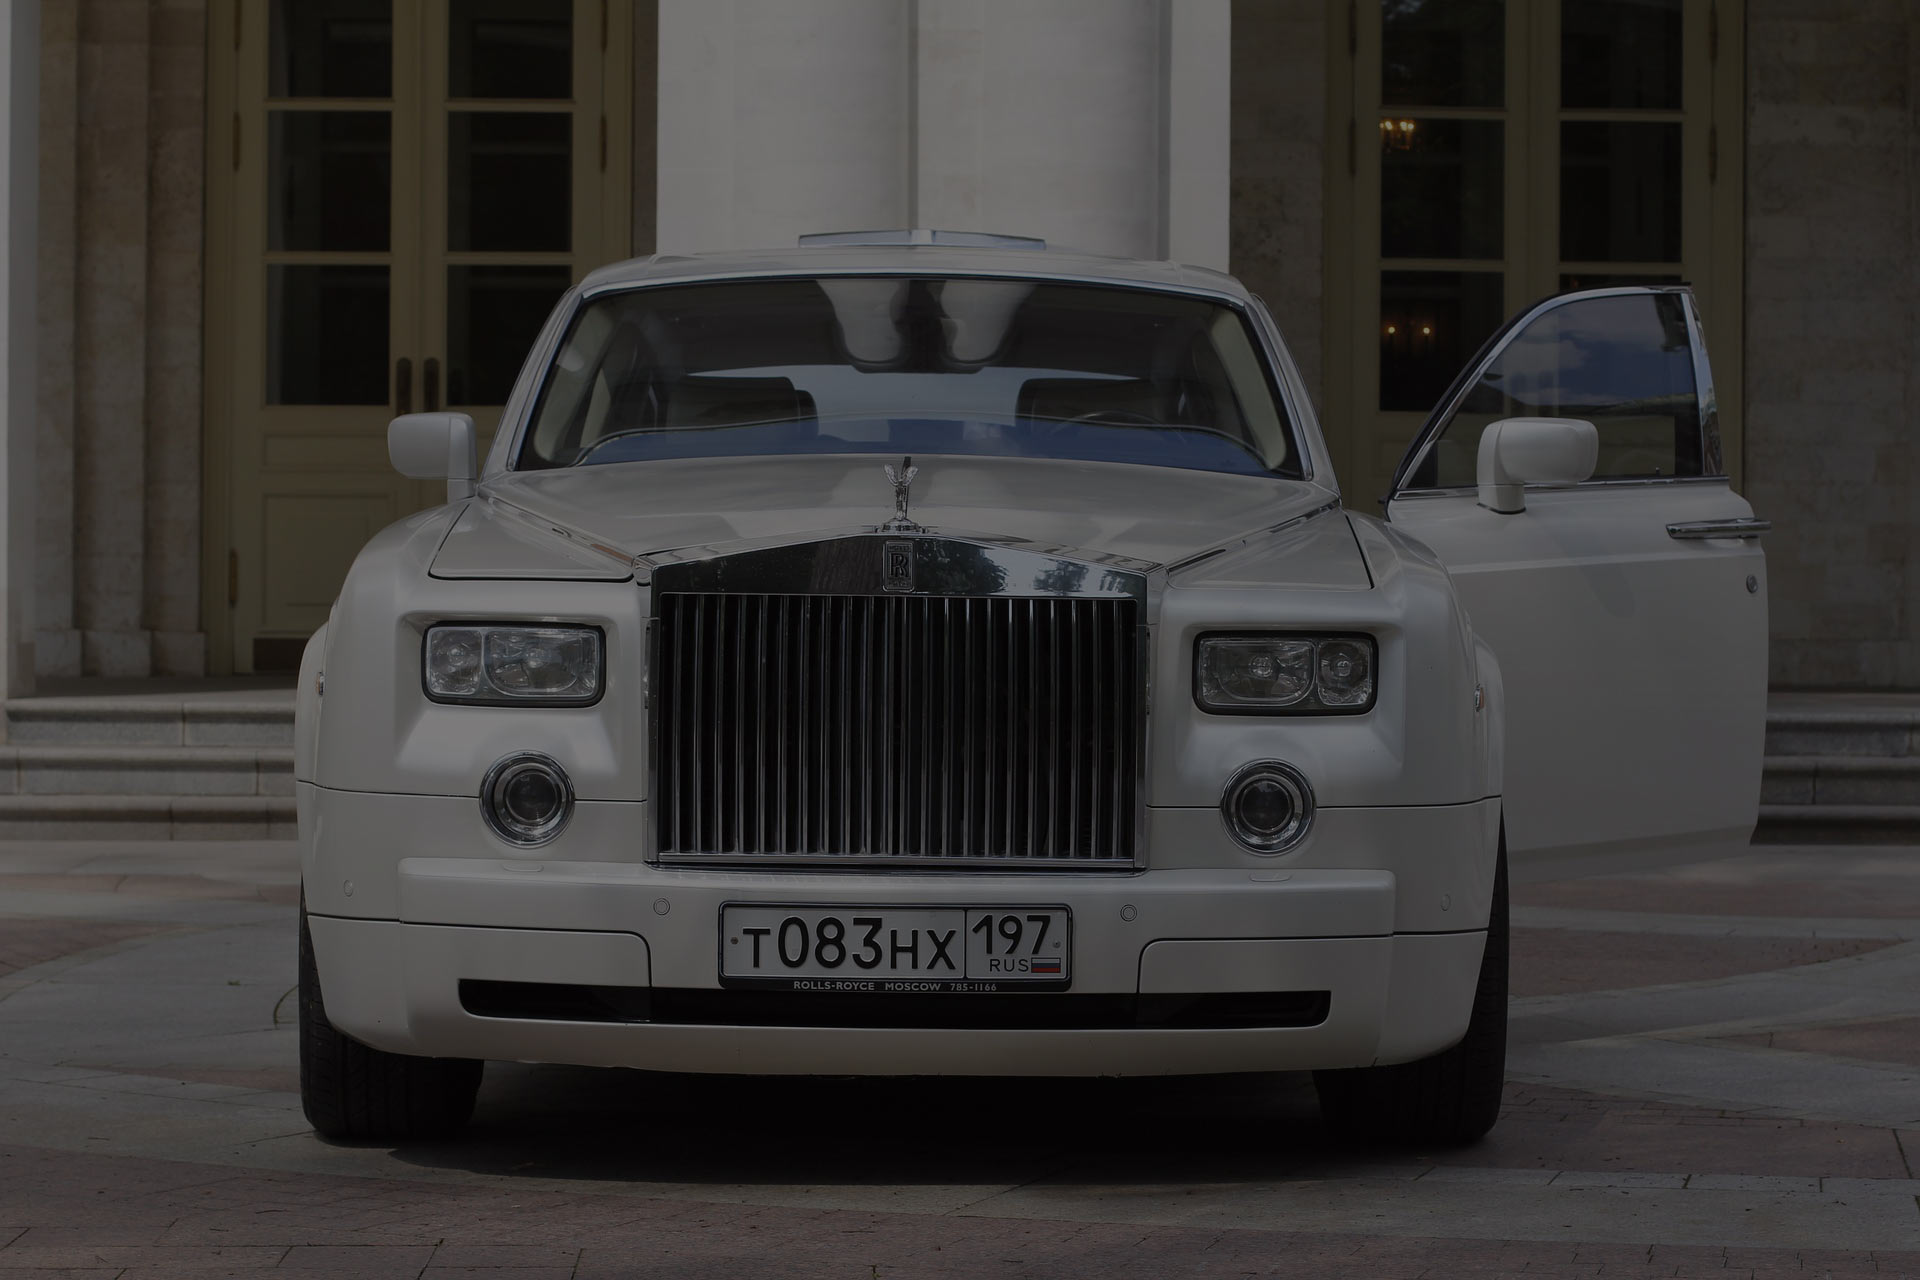 White luxury Rolls Royce that can be used for transportation service, for personal or business travel